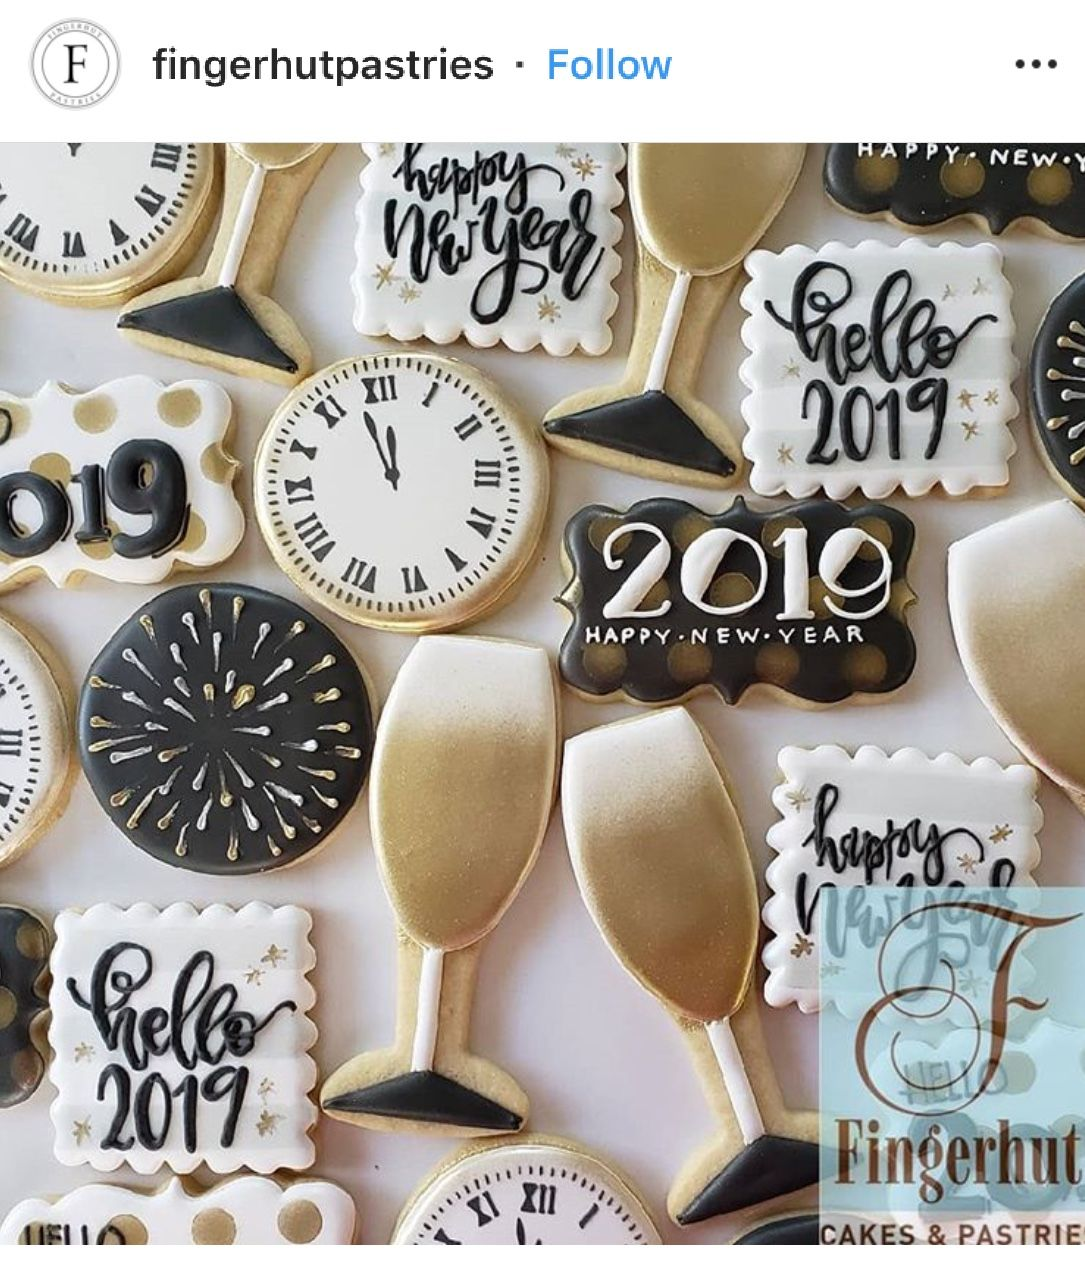 Pin by Christina Whittaker on Cookie decorating in 2020